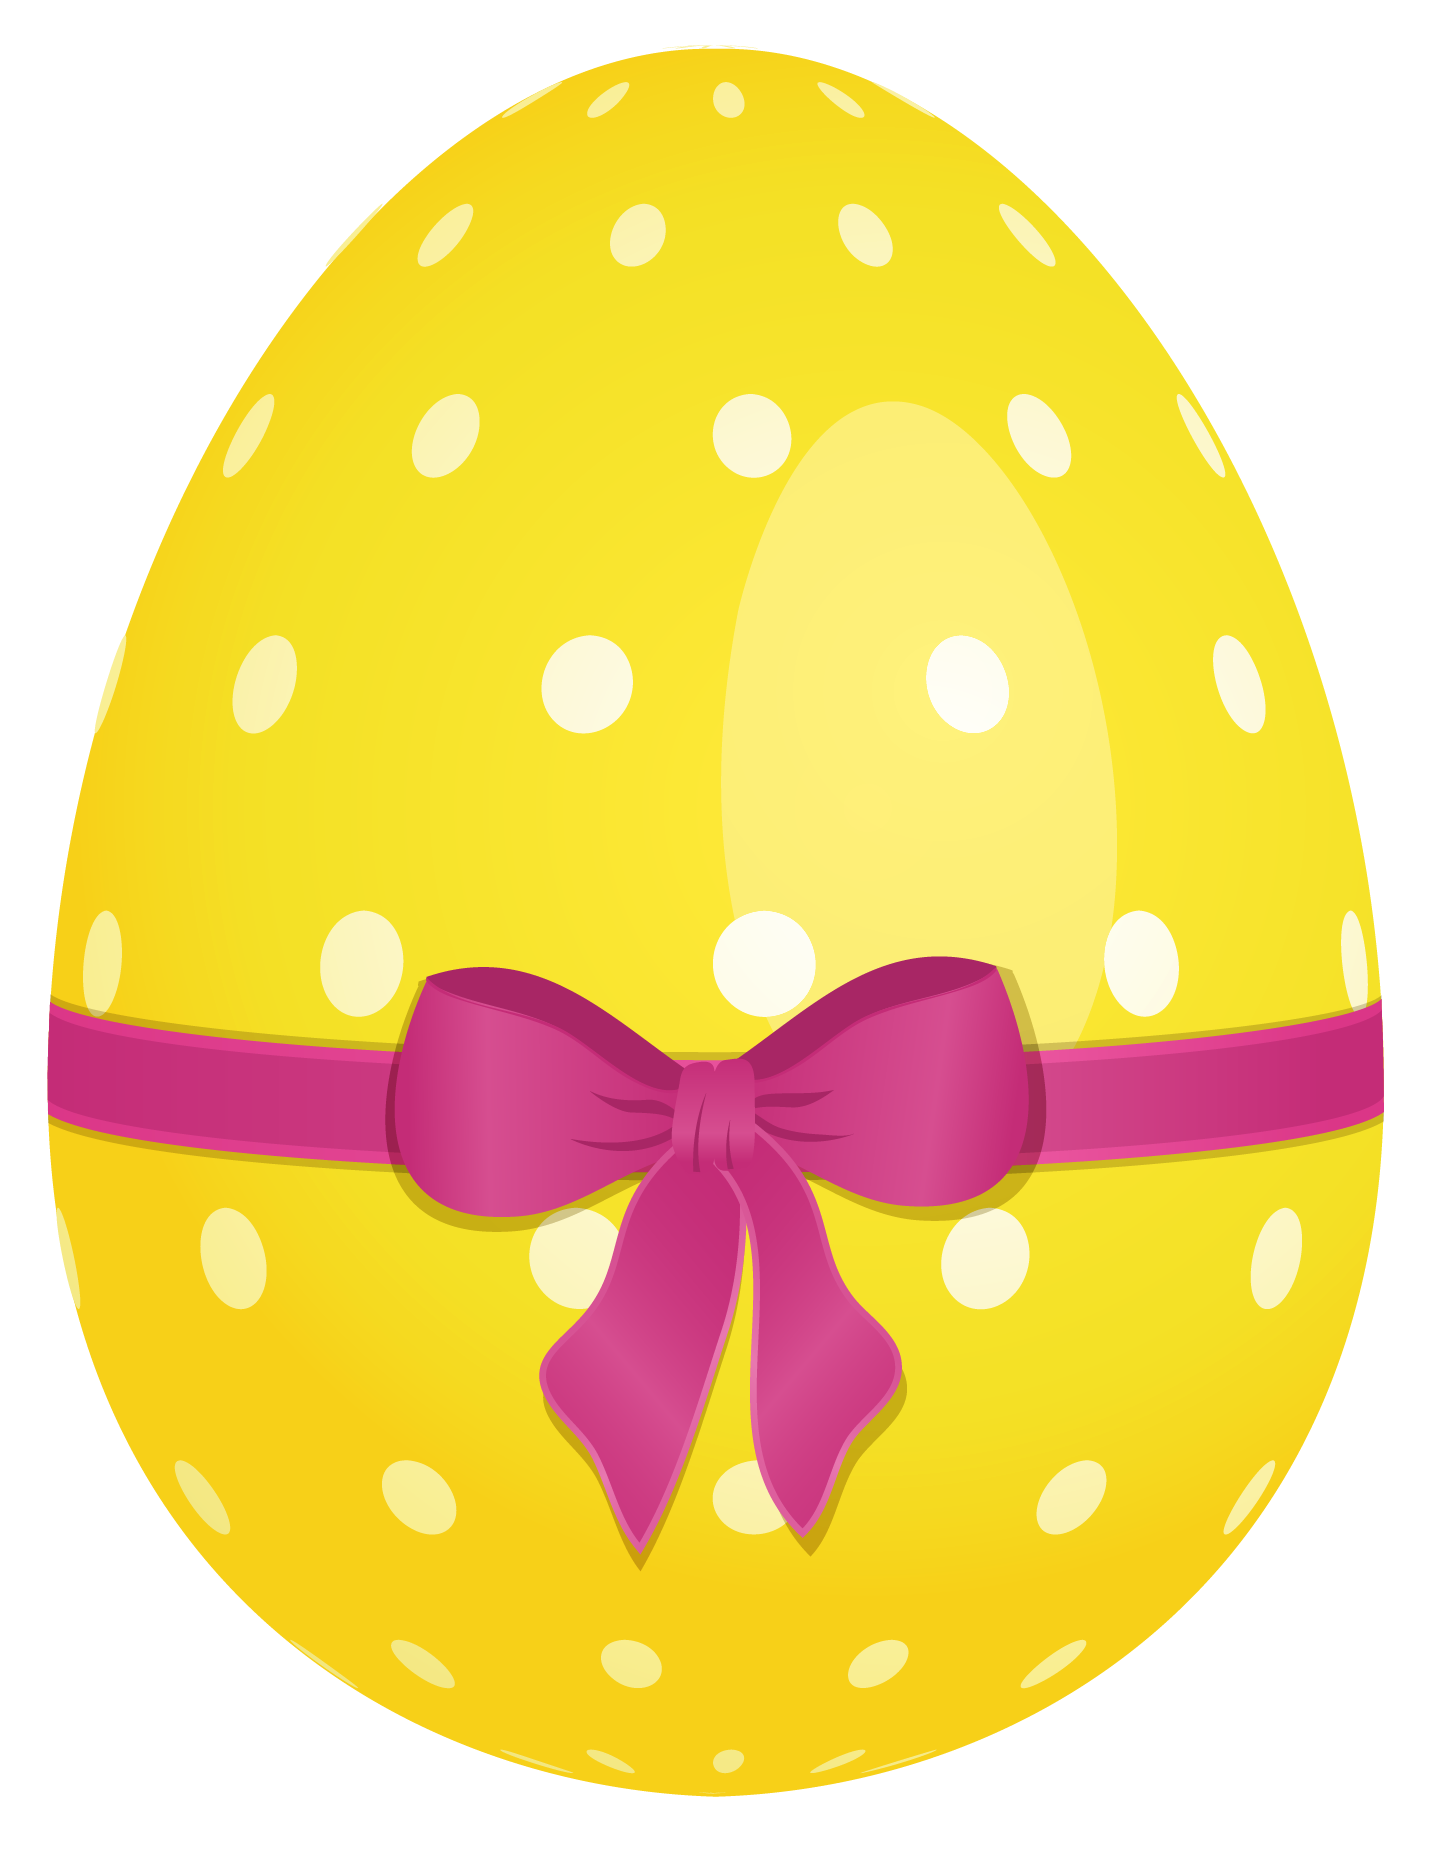 Easter egg free clipart